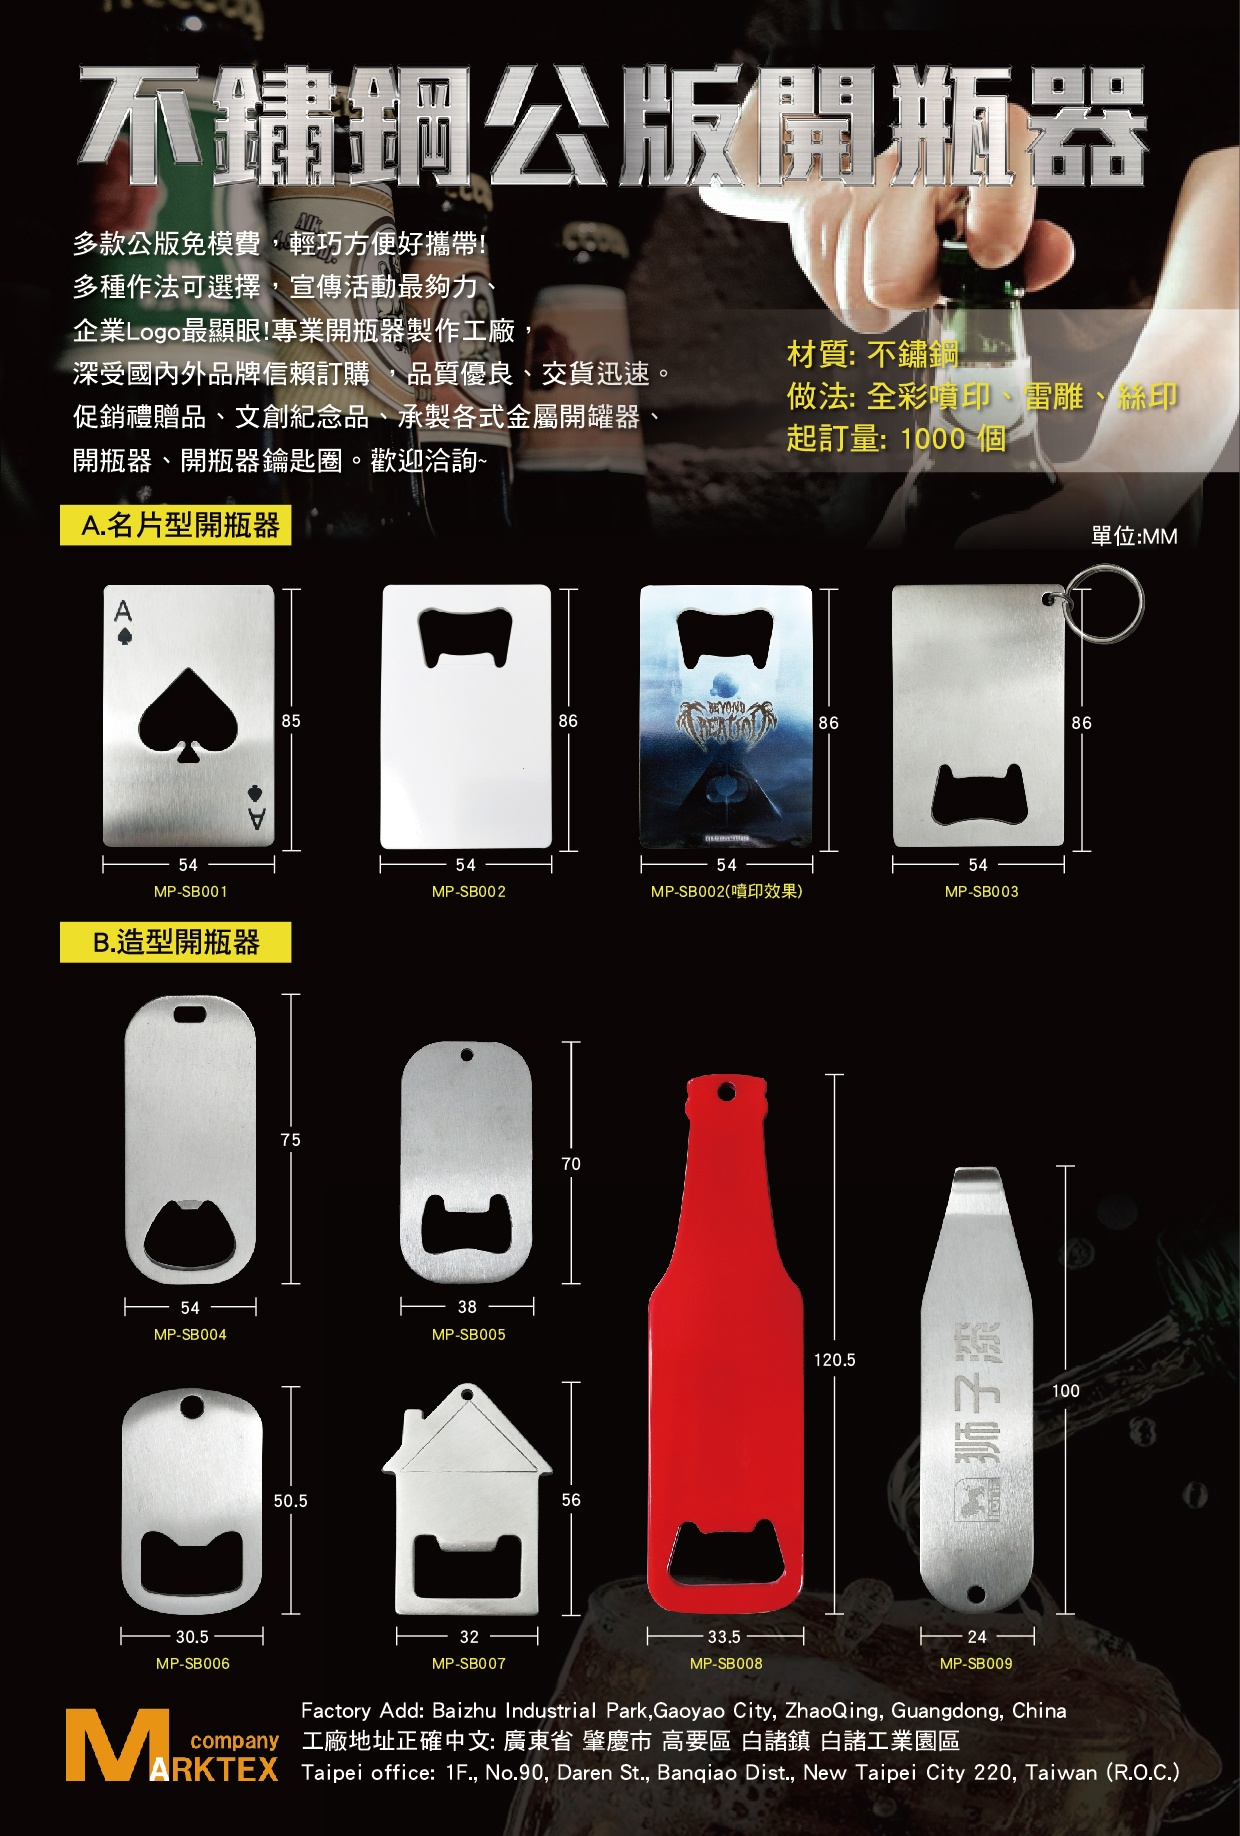 20190201 Stainless Steel Opener cn